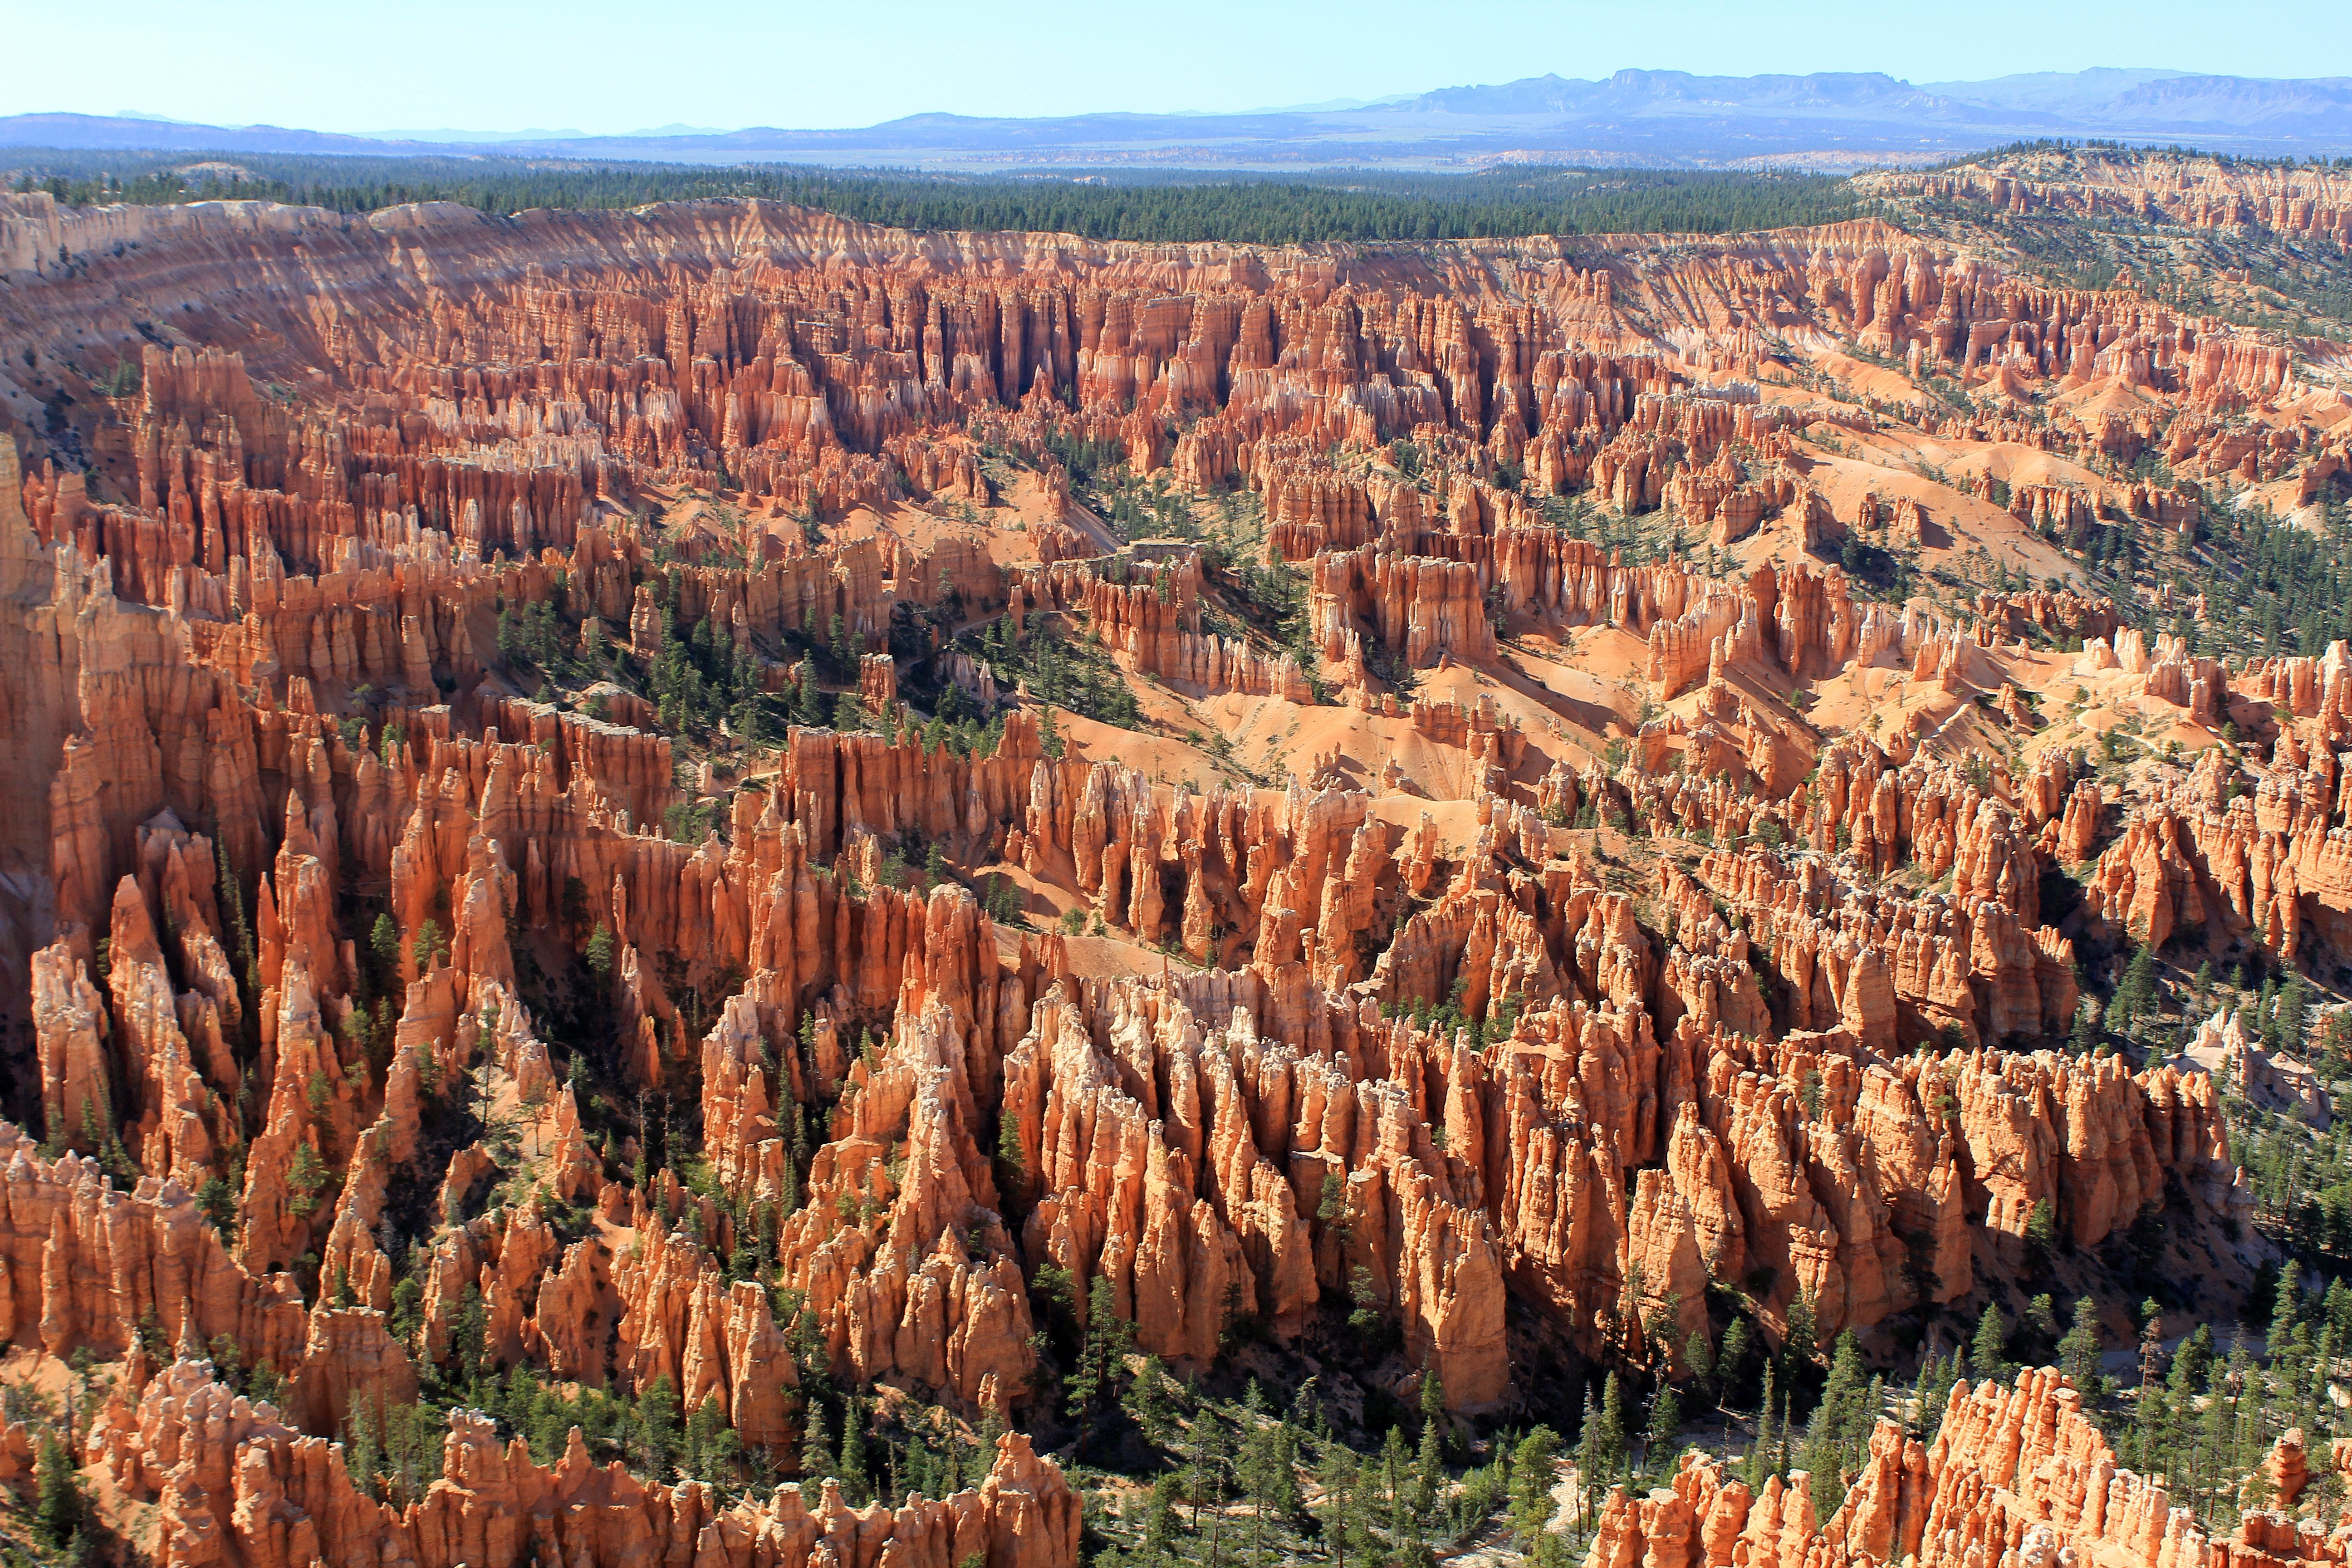 139359 download wallpaper Nature, State Of Utah, Utah, Bryce Canyon, Handsomely, It's Beautiful, Landscape screensavers and pictures for free